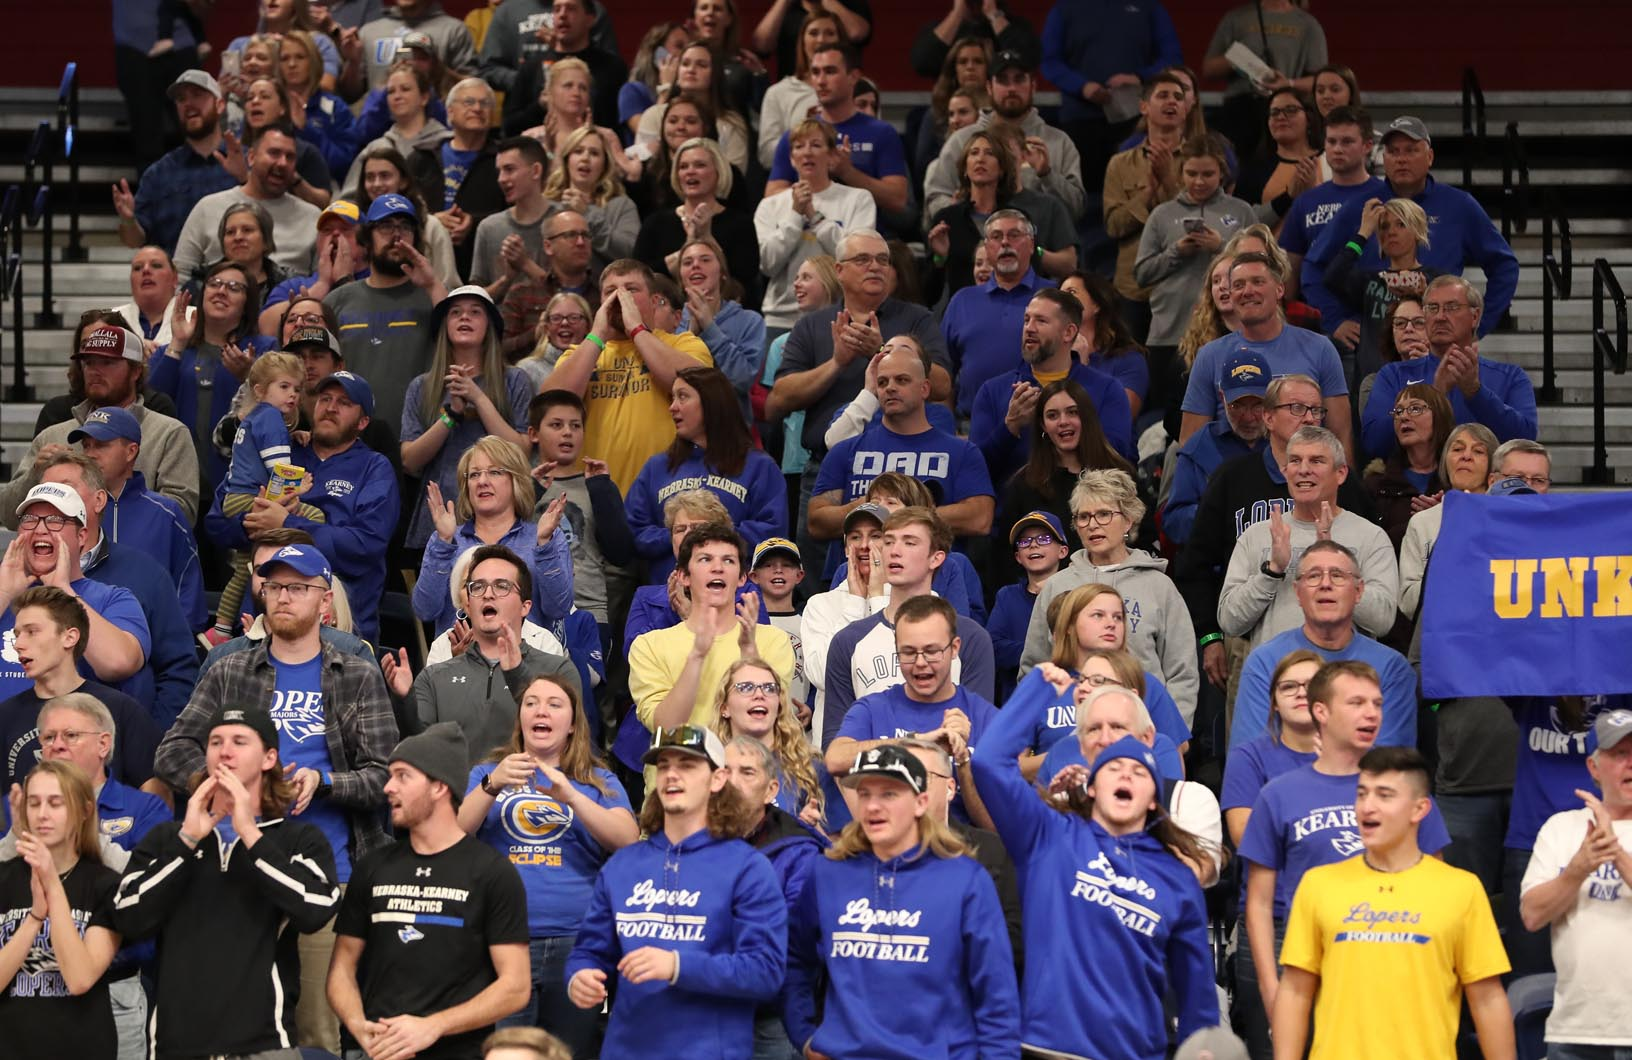 Approximately 700 UNK fans traveled to Denver to support the volleyball team during Saturday's NCAA Division II championship at Auraria Event Center.